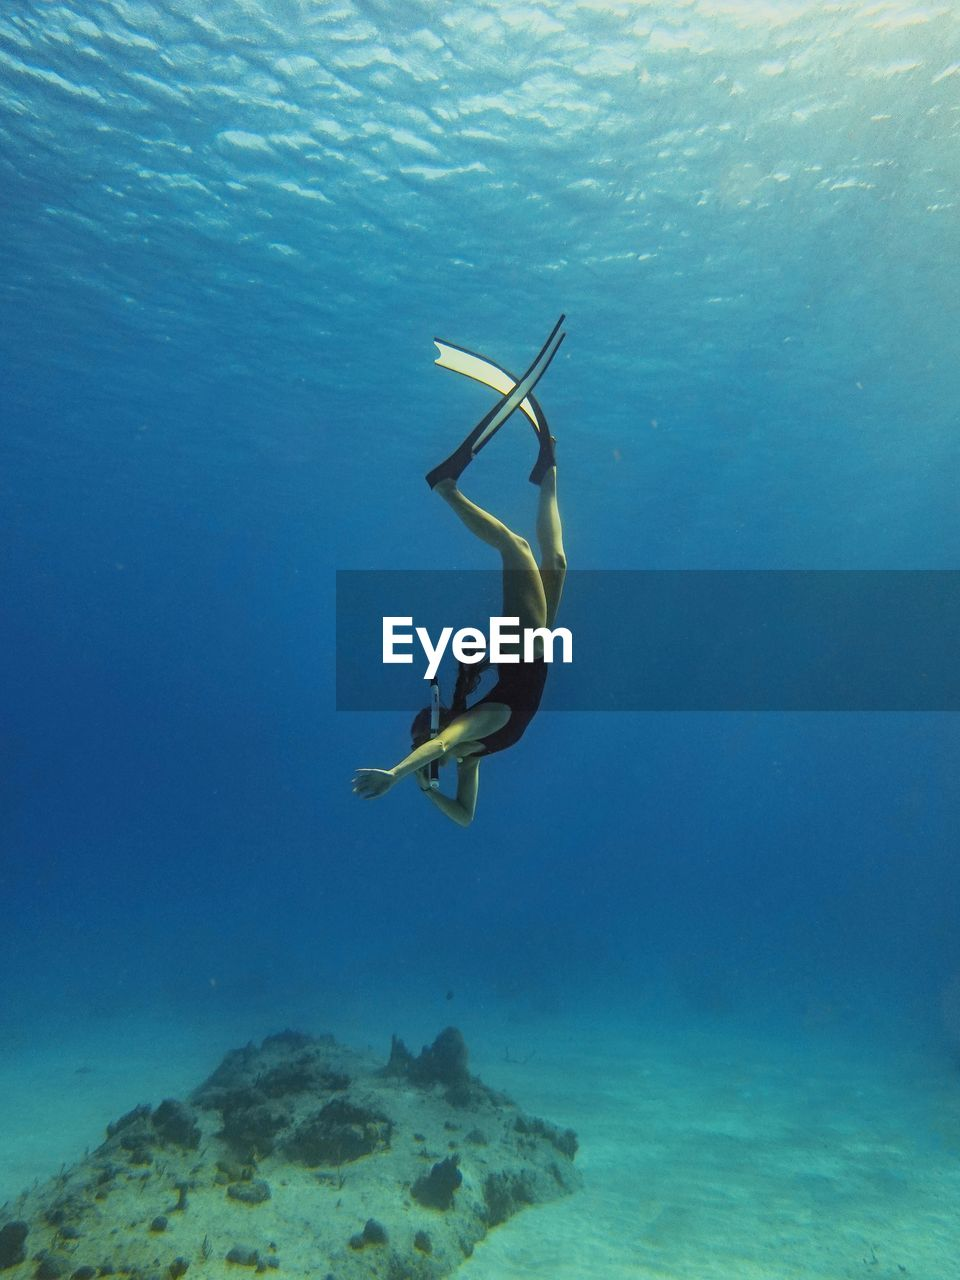 underwater, sea, water, undersea, swimming, adventure, one person, sport, real people, nature, leisure activity, aquatic sport, exploration, lifestyles, blue, diving equipment, day, full length, outdoors, snorkeling, marine, arms raised